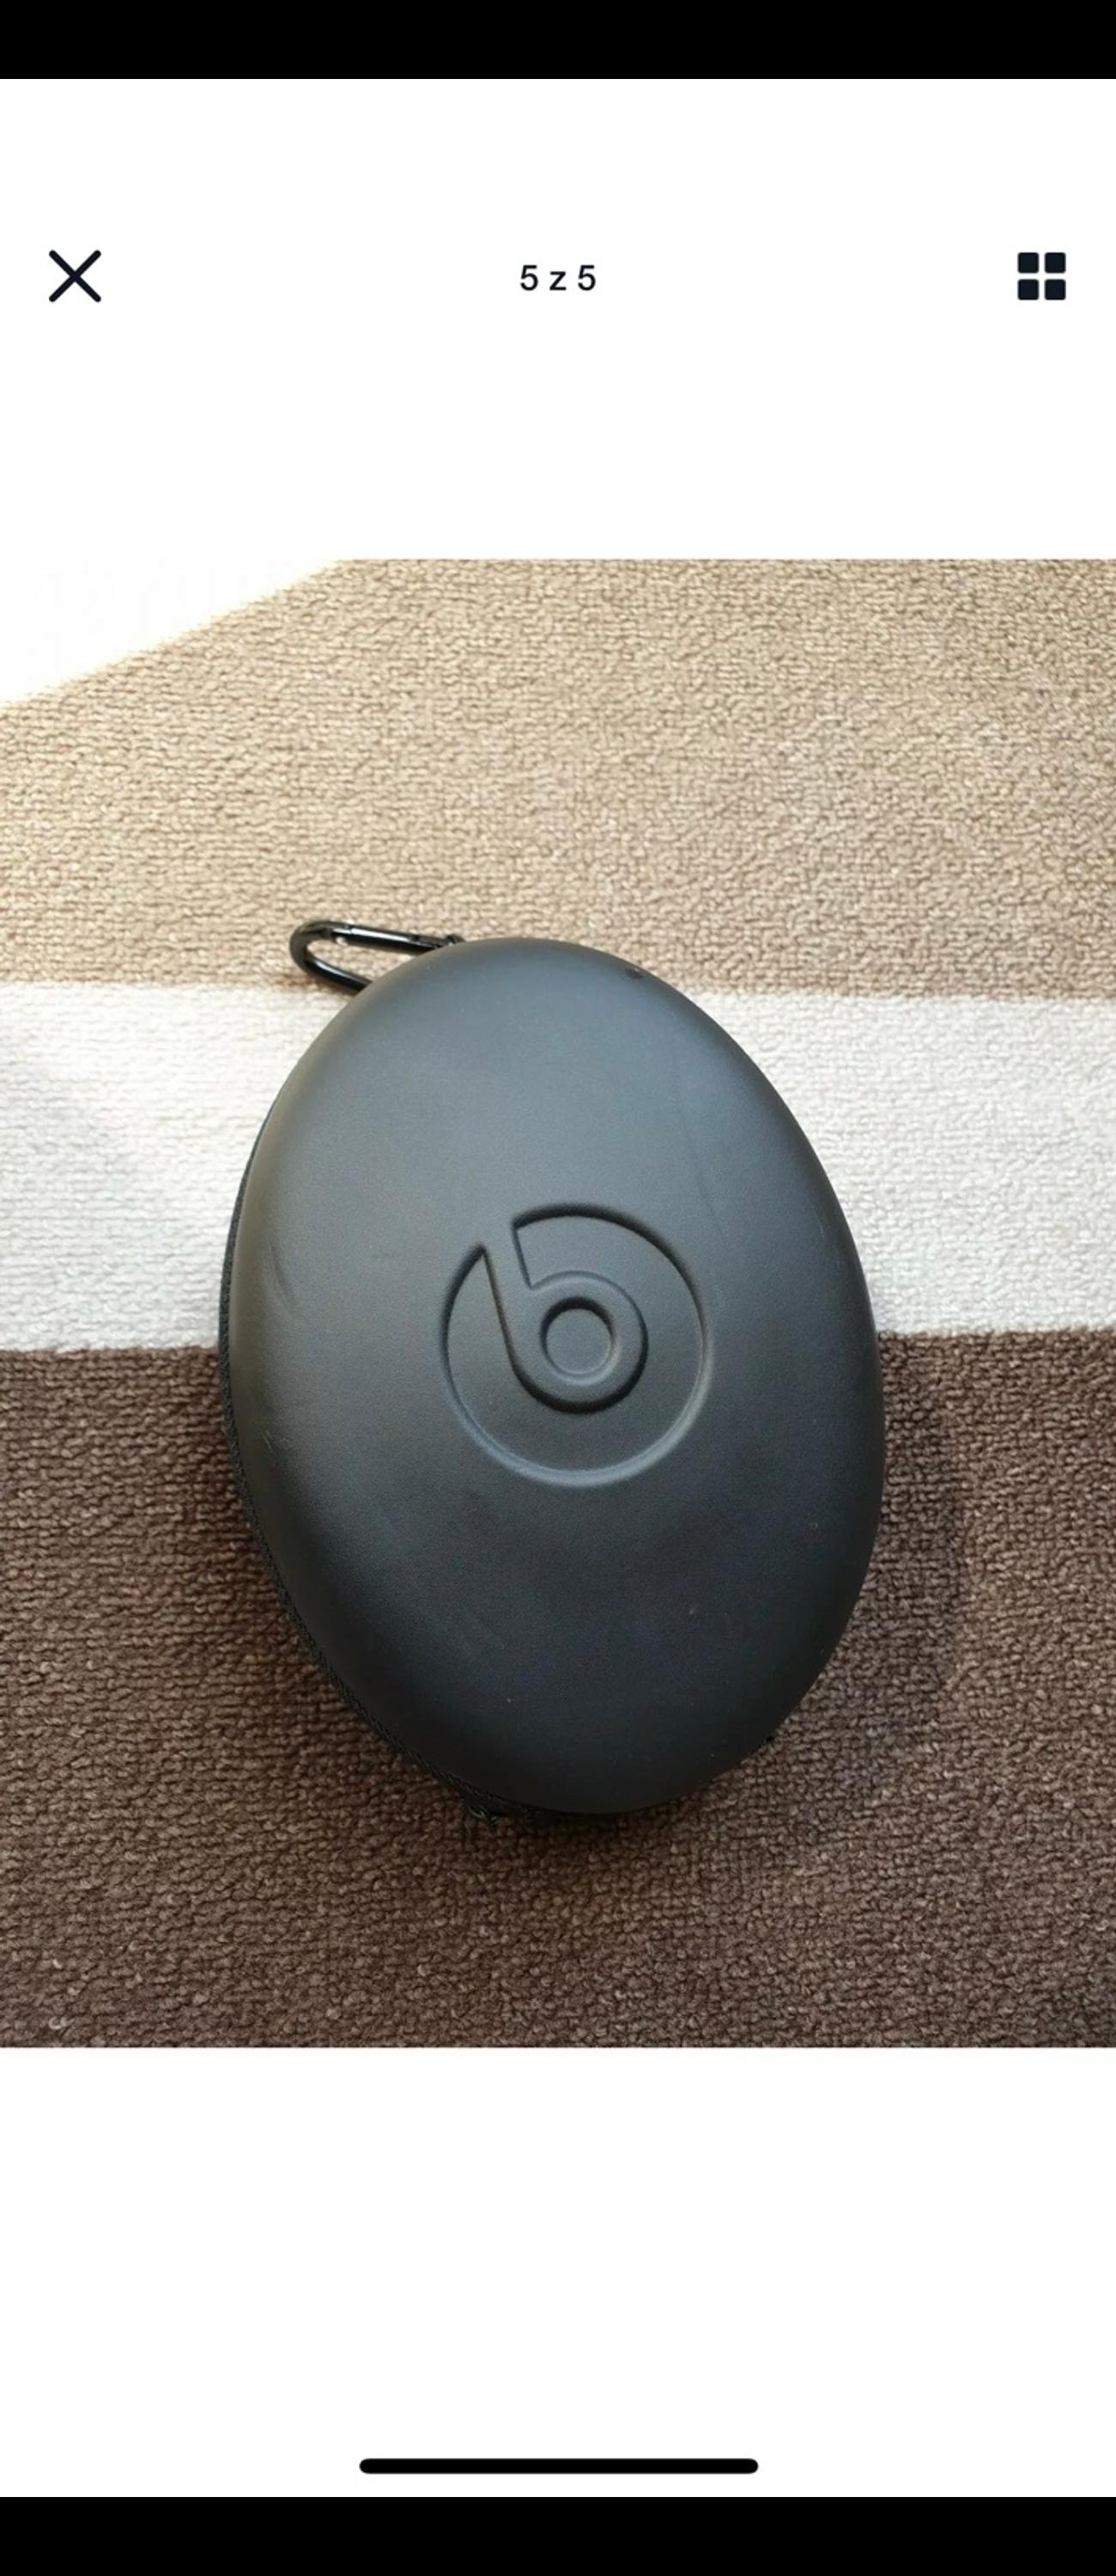 Beats By Dr. Dre Headphones.  Im sorry im not quite sure which generation they are but they are in very good condition and work perfectly.  £55ovno  Any questions please ask